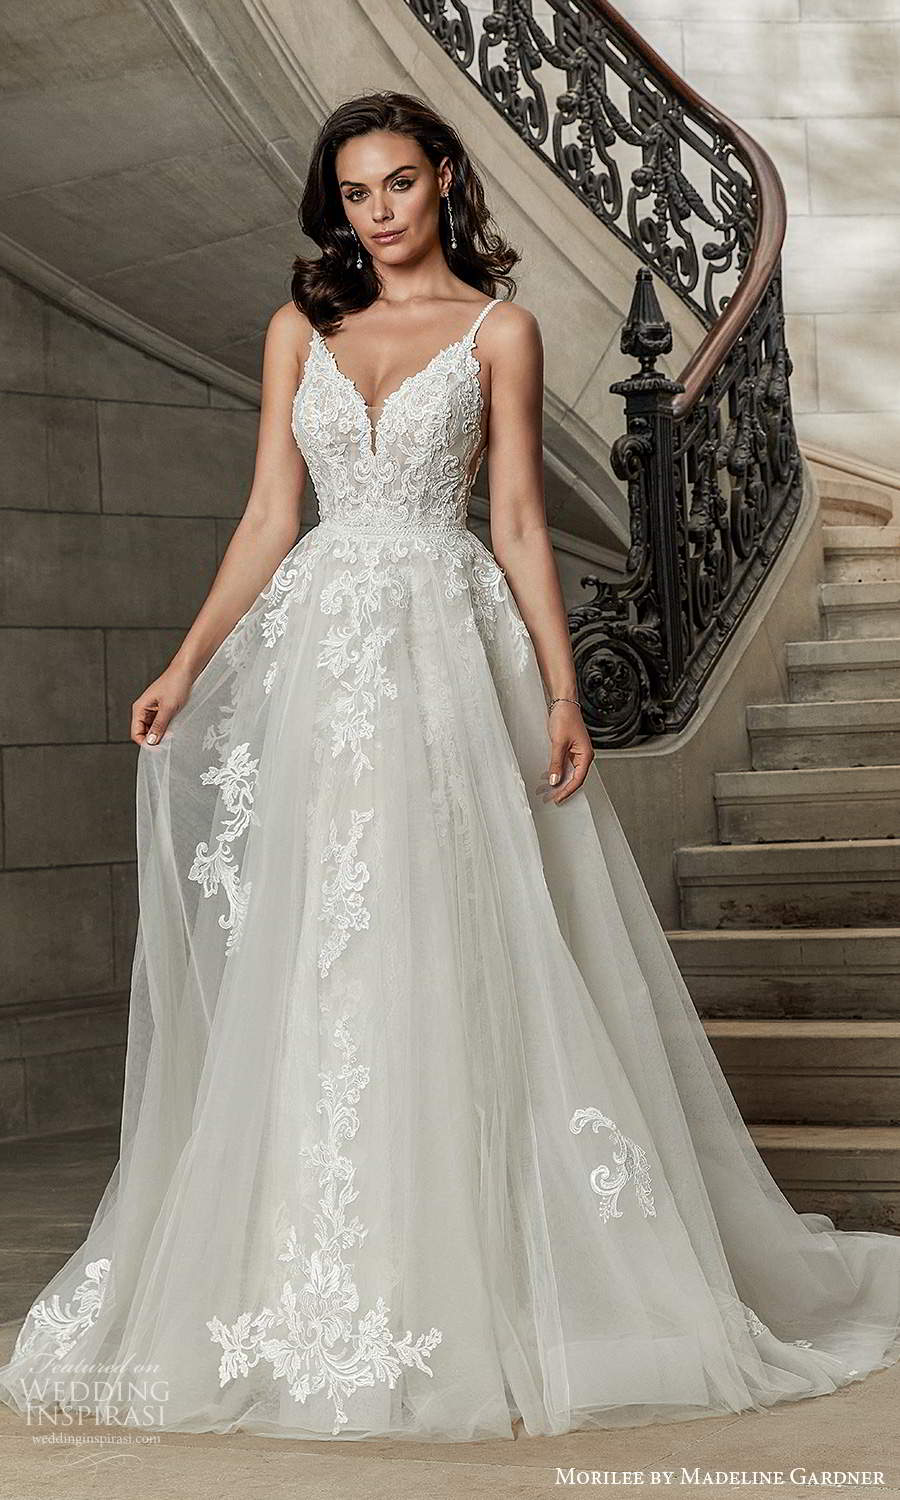 morilee madeline gardner spring 2022 bridal sleeveless straps sweetheart neckline fully embellished sheath wedding dress chapel train ball gown overskirt (5) mv